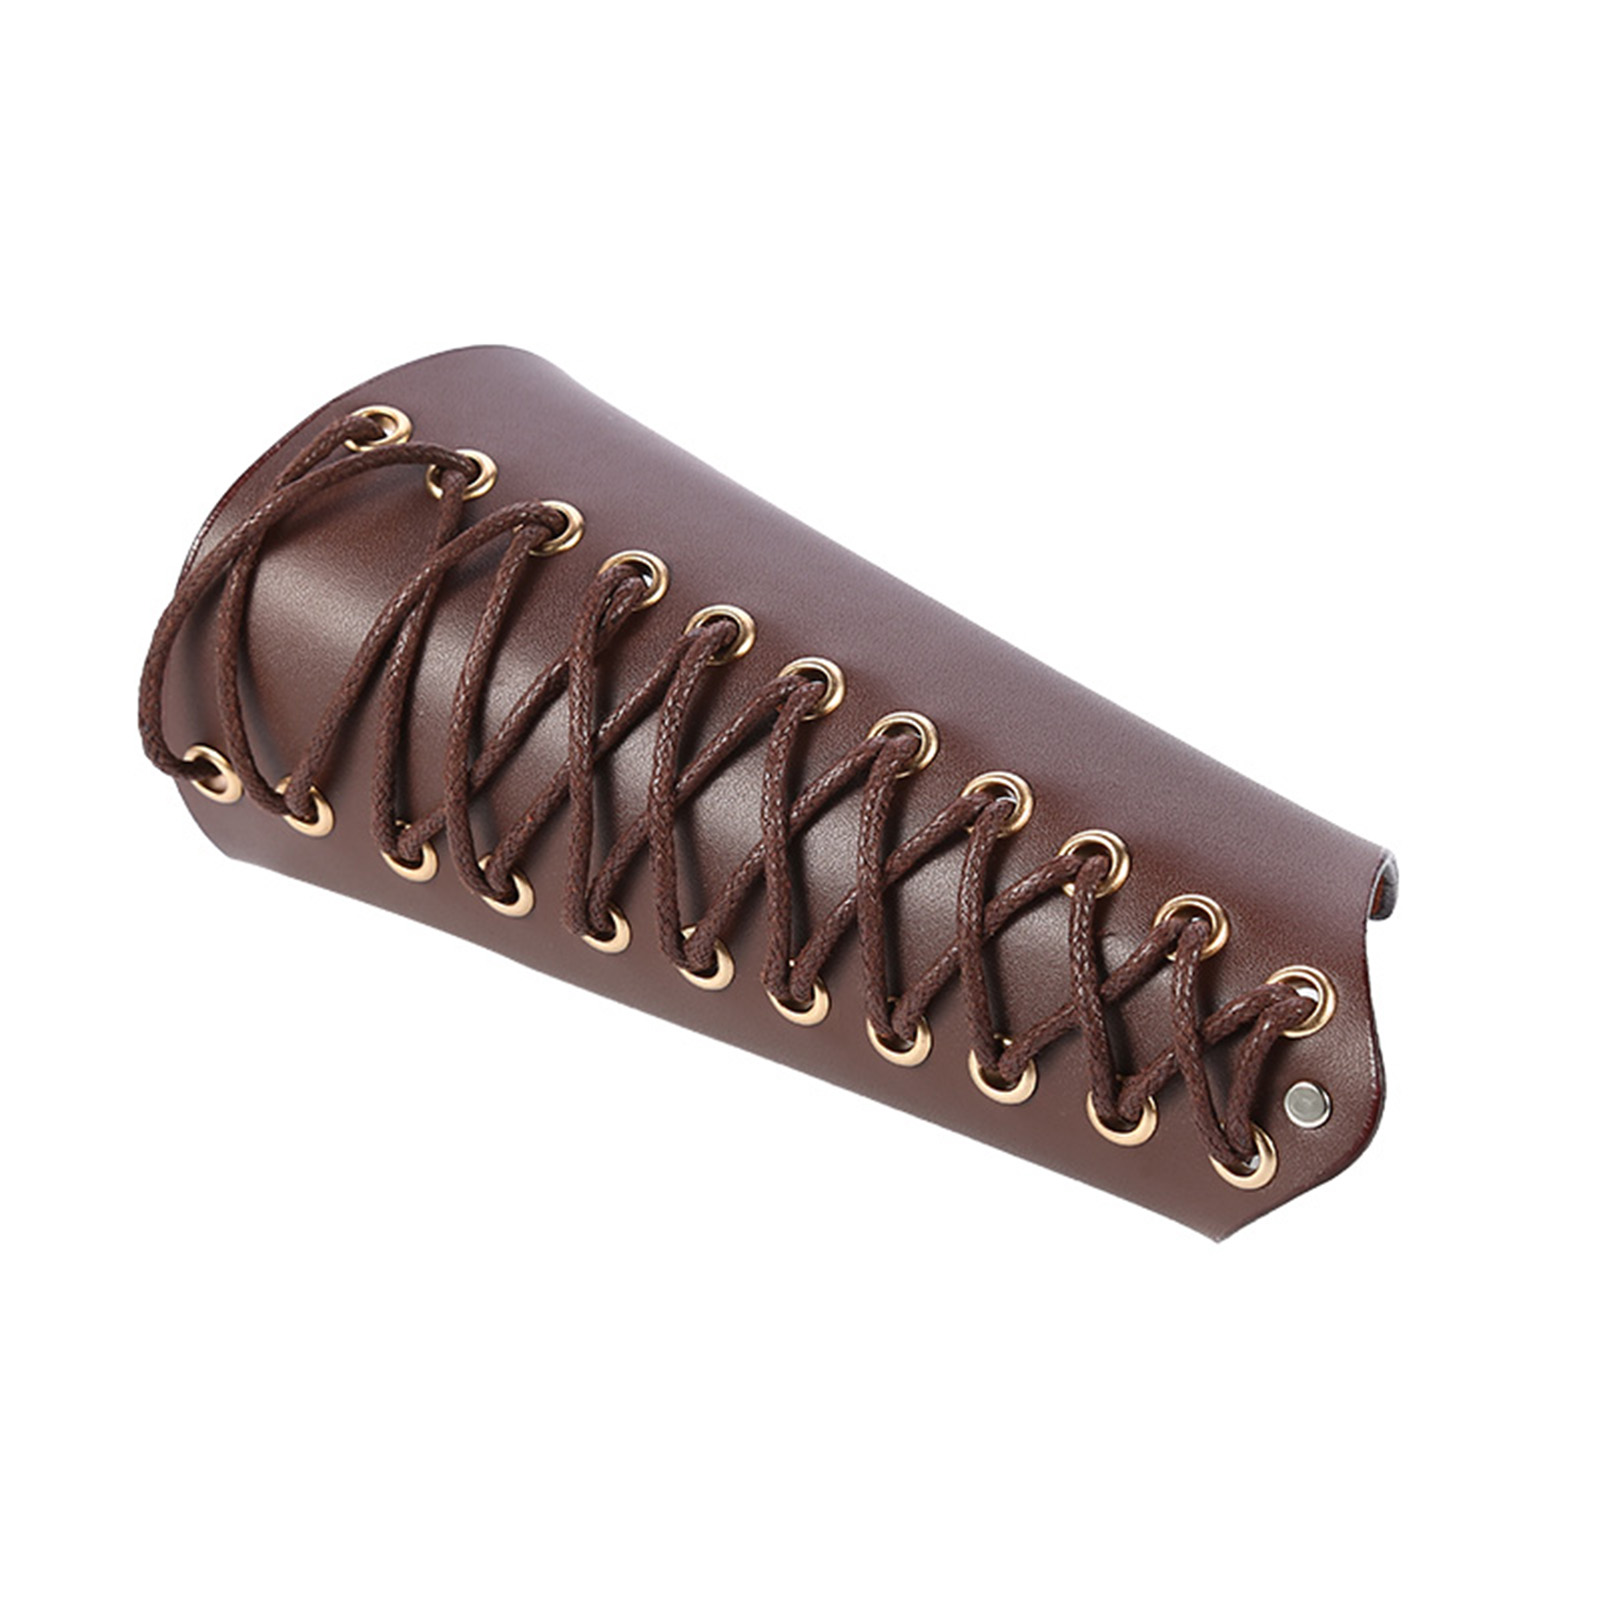 Unisex-Archery-Recurve-Bow-Arm-Guard-Traditional-Cow-Leather-Bracer-for-Longbow thumbnail 13